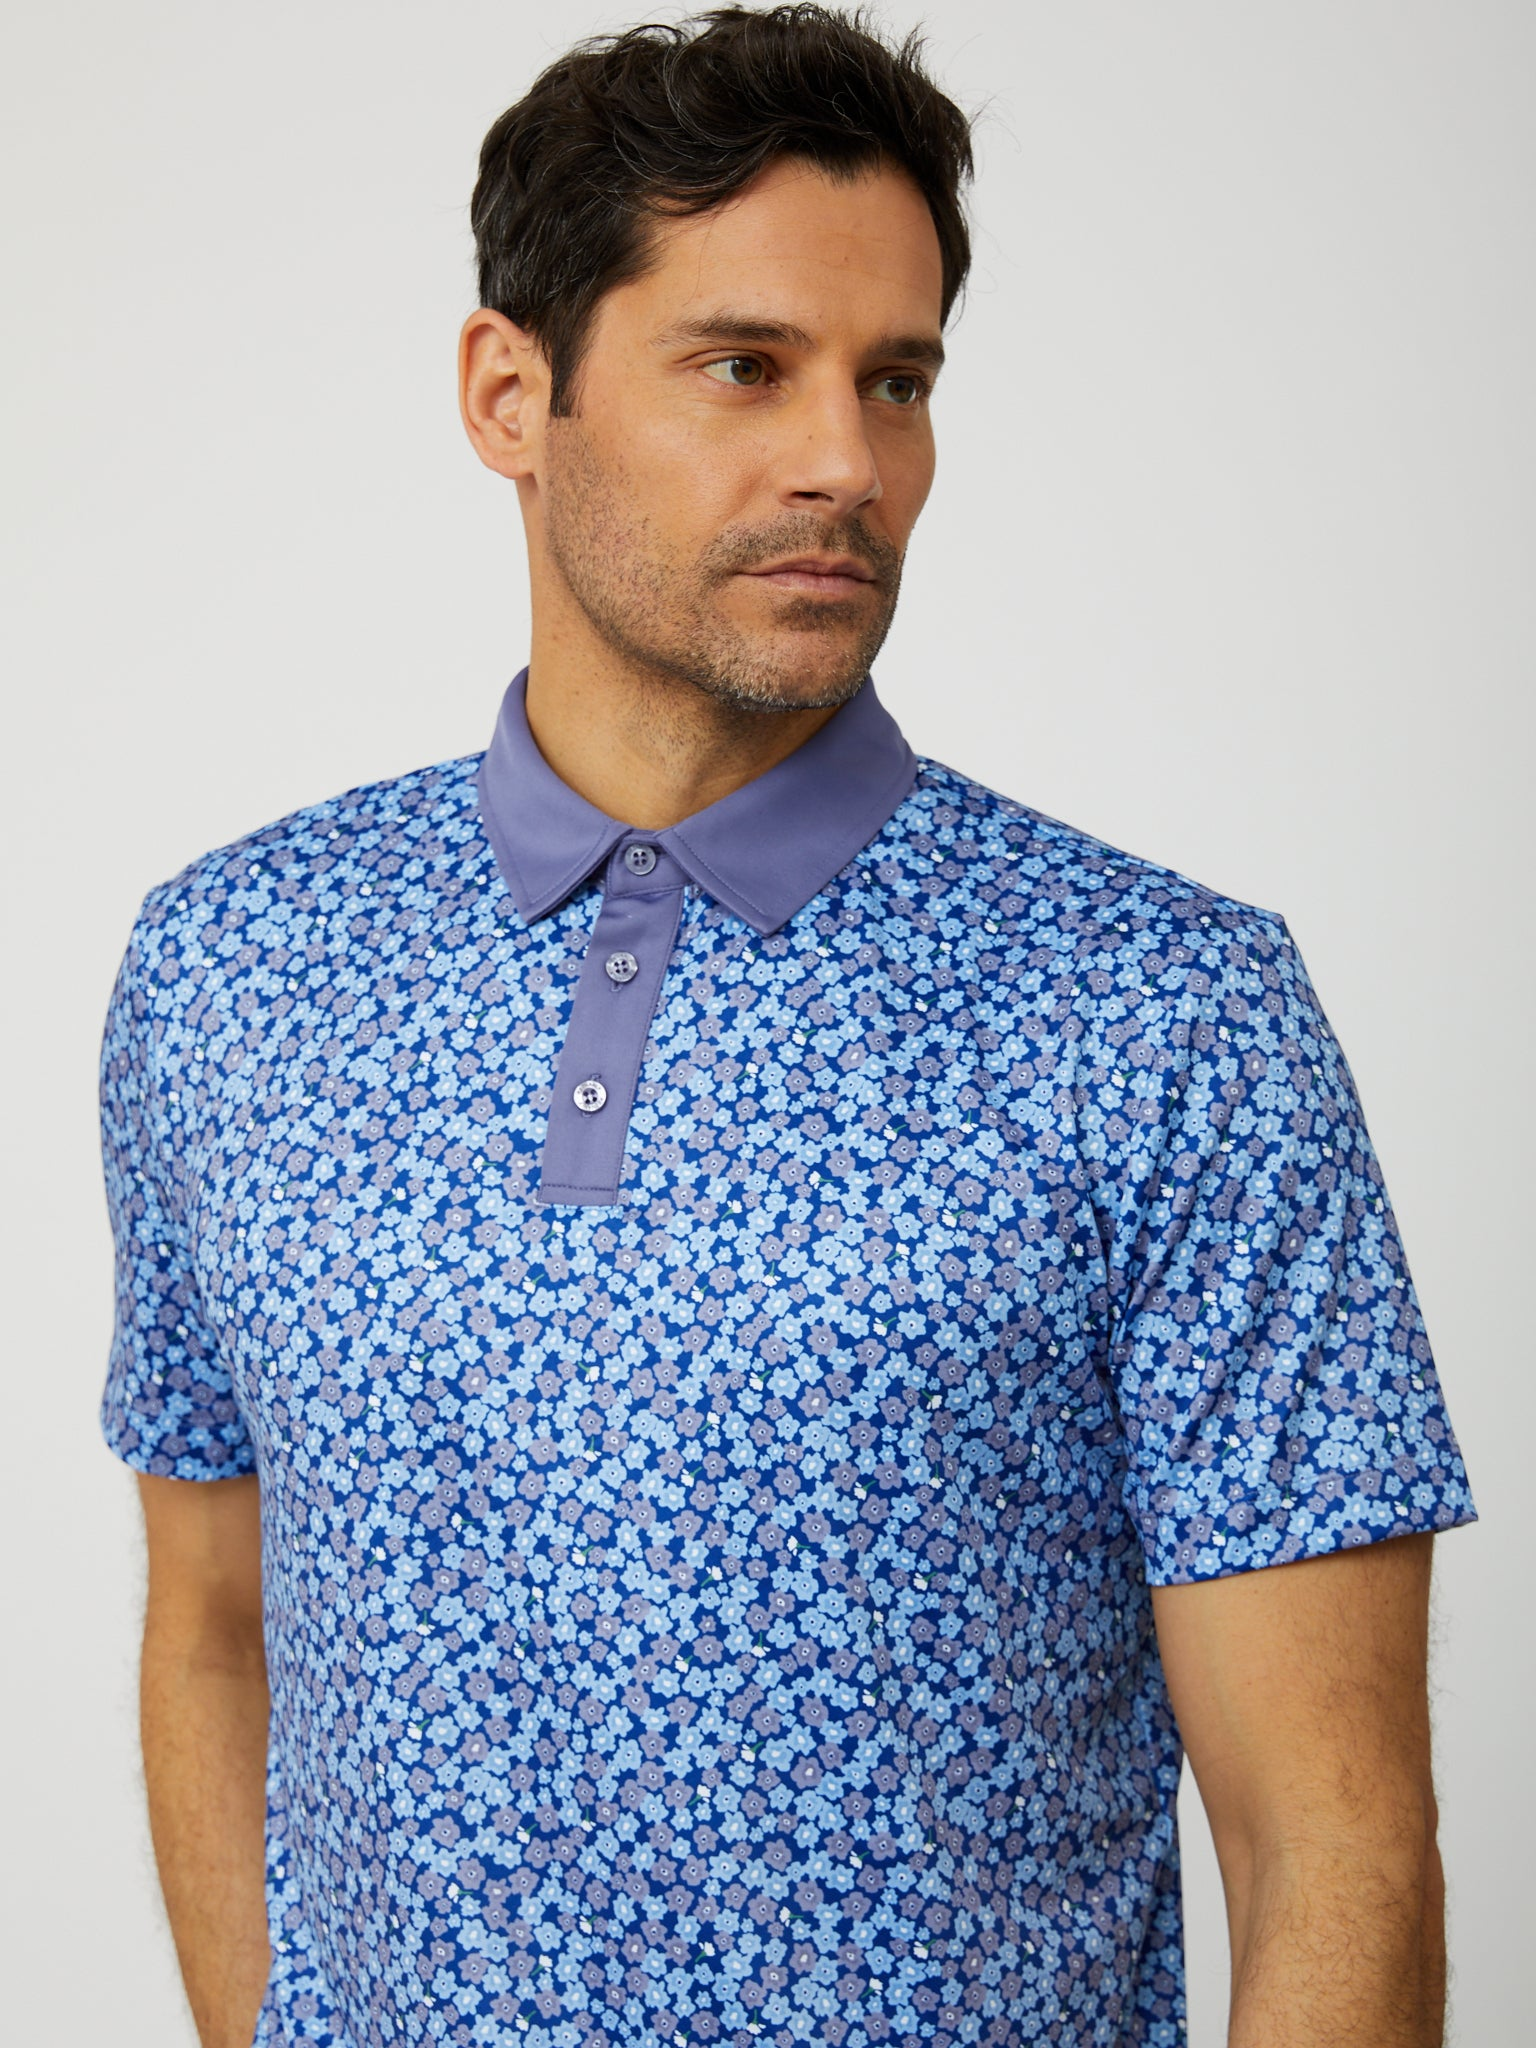 Fitch Polo in Reflex Blue/Multi